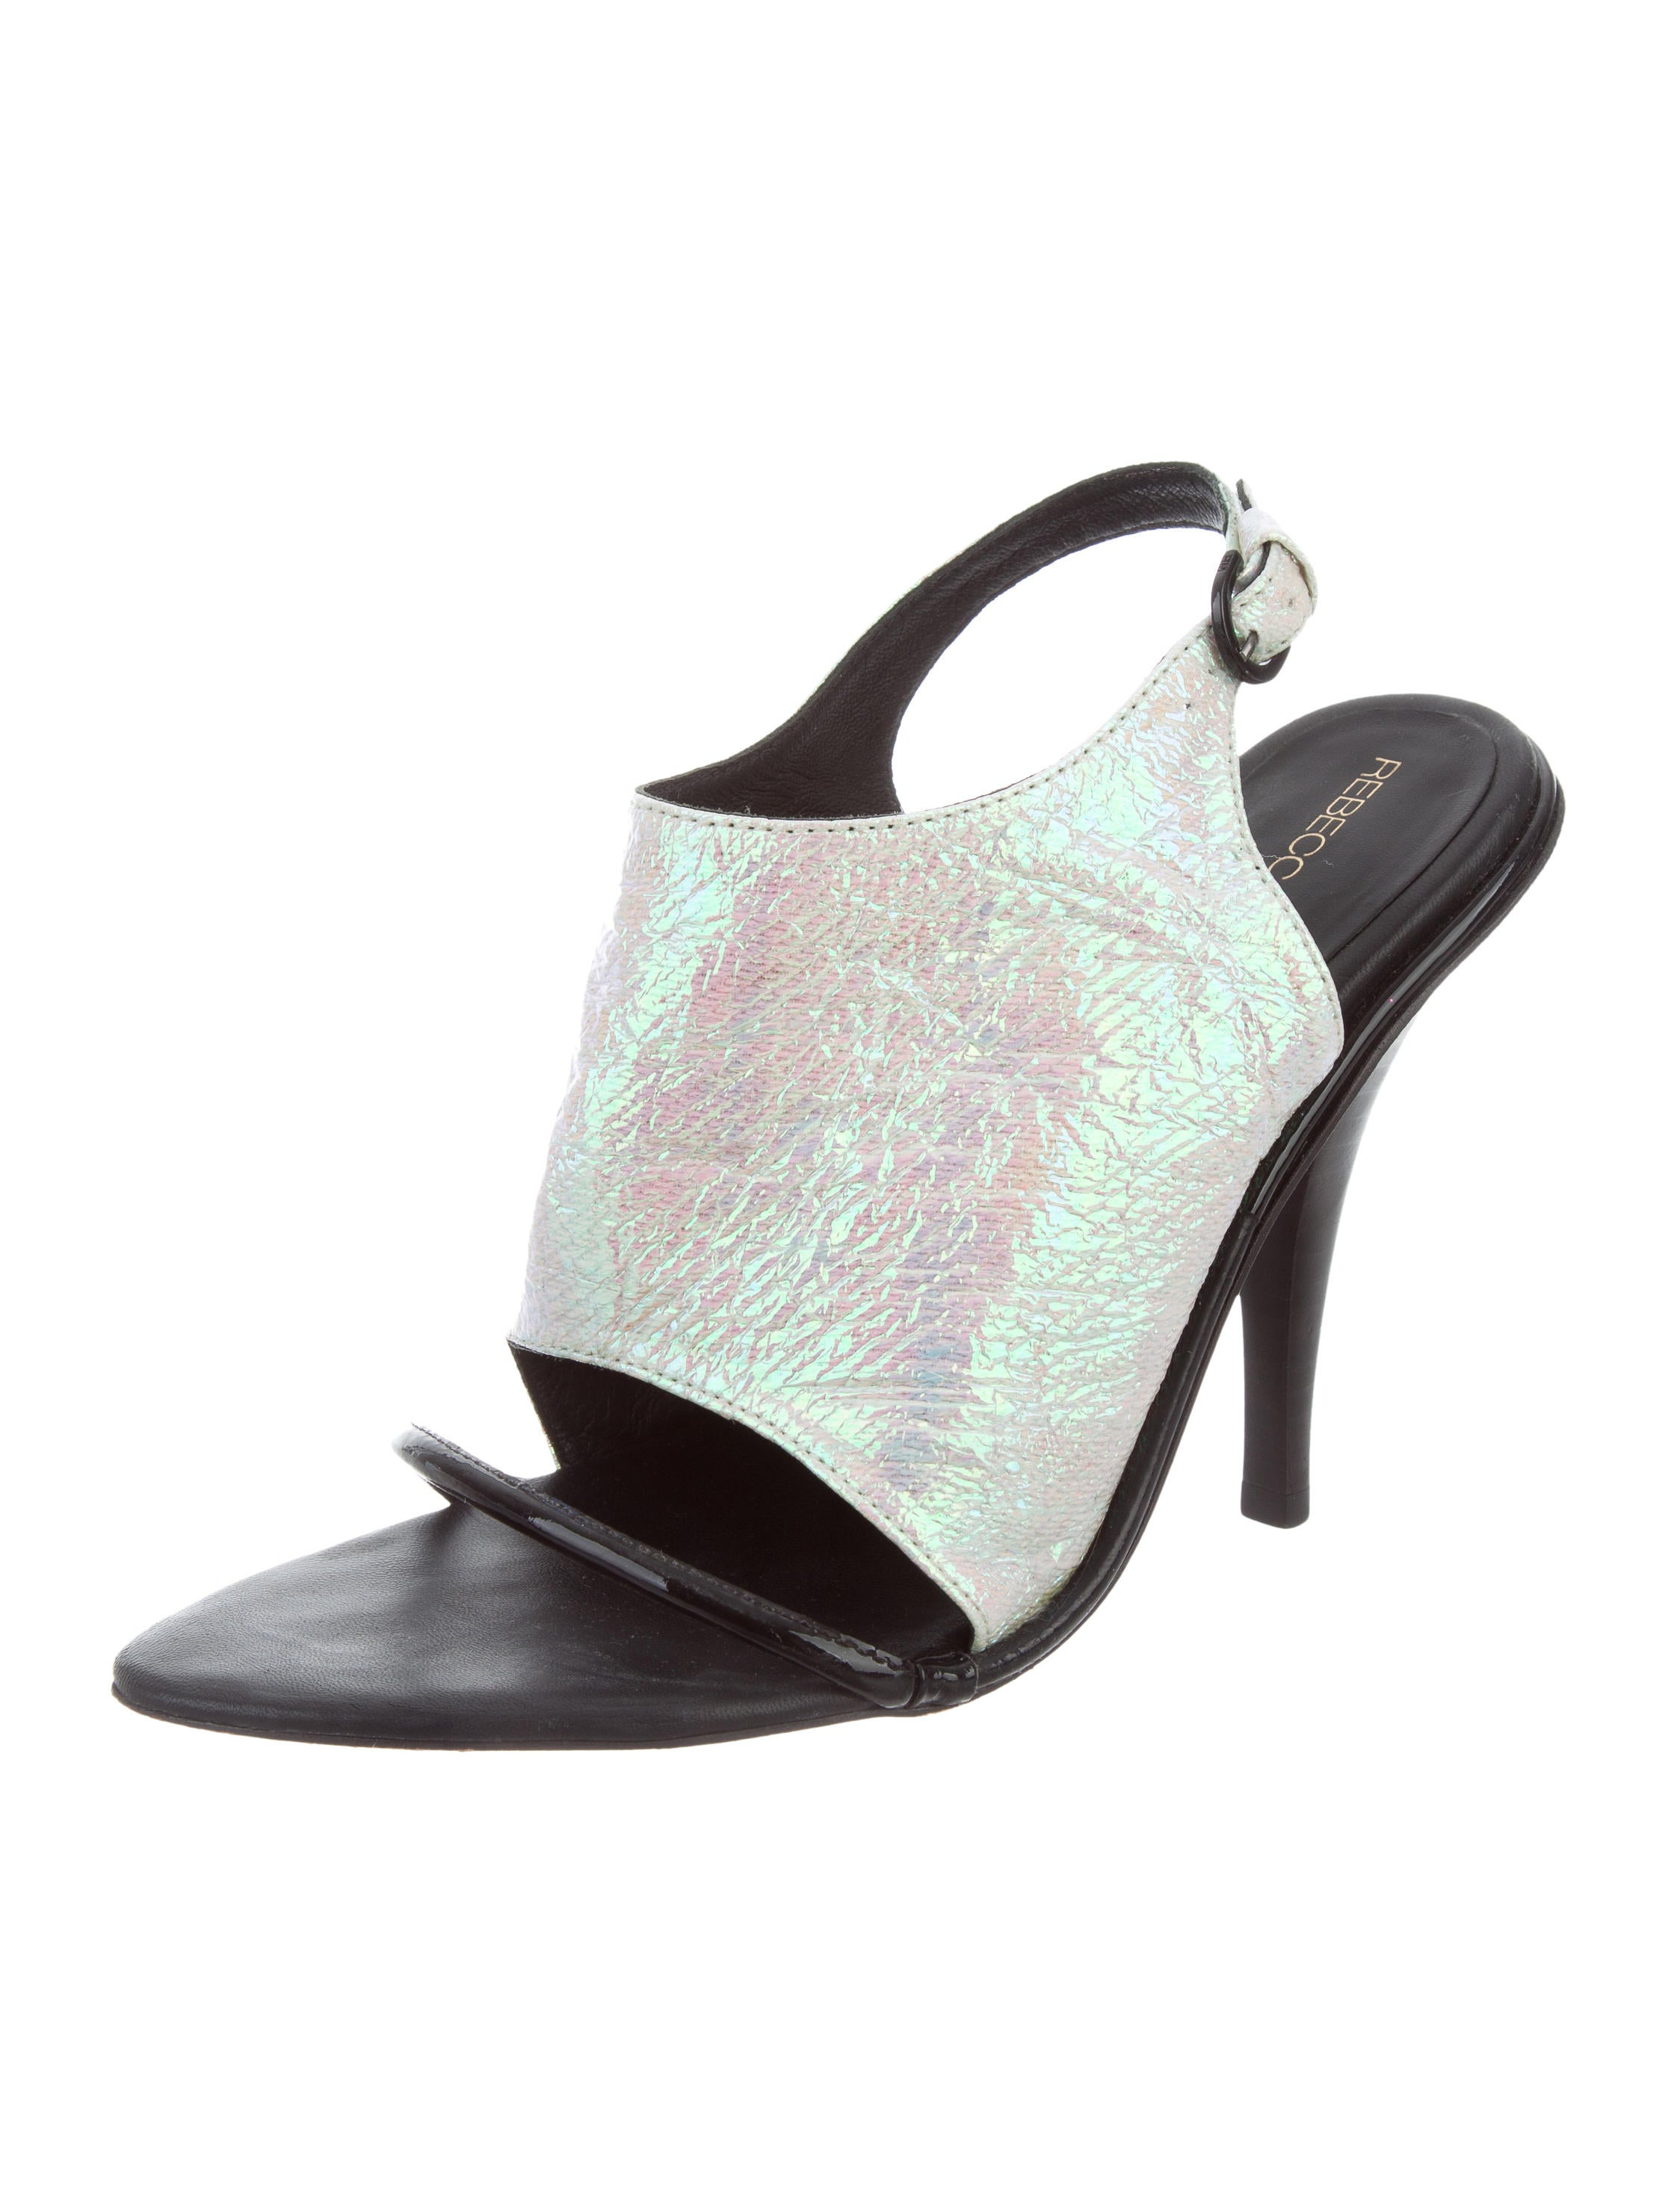 pre order cheap online cheap sale new Rebecca Minkoff Iridescent Leather-Trimmed Sandals for cheap sale online free shipping largest supplier low price fee shipping sale online nEdGTc